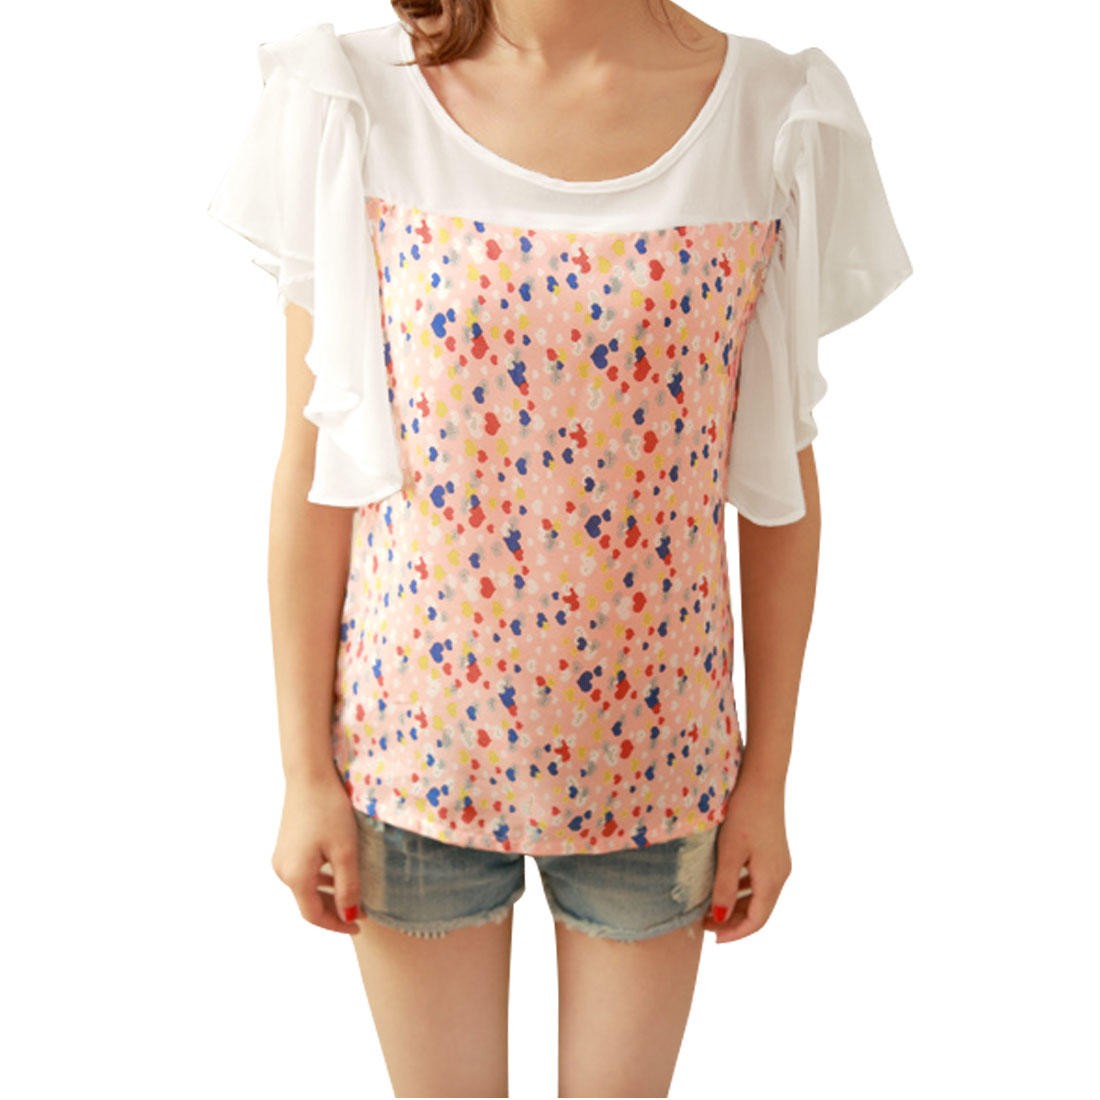 Lady Multicolor Scoop Neck Short Sleeve Semi Sheer Top Hearts Splice Blouse XS